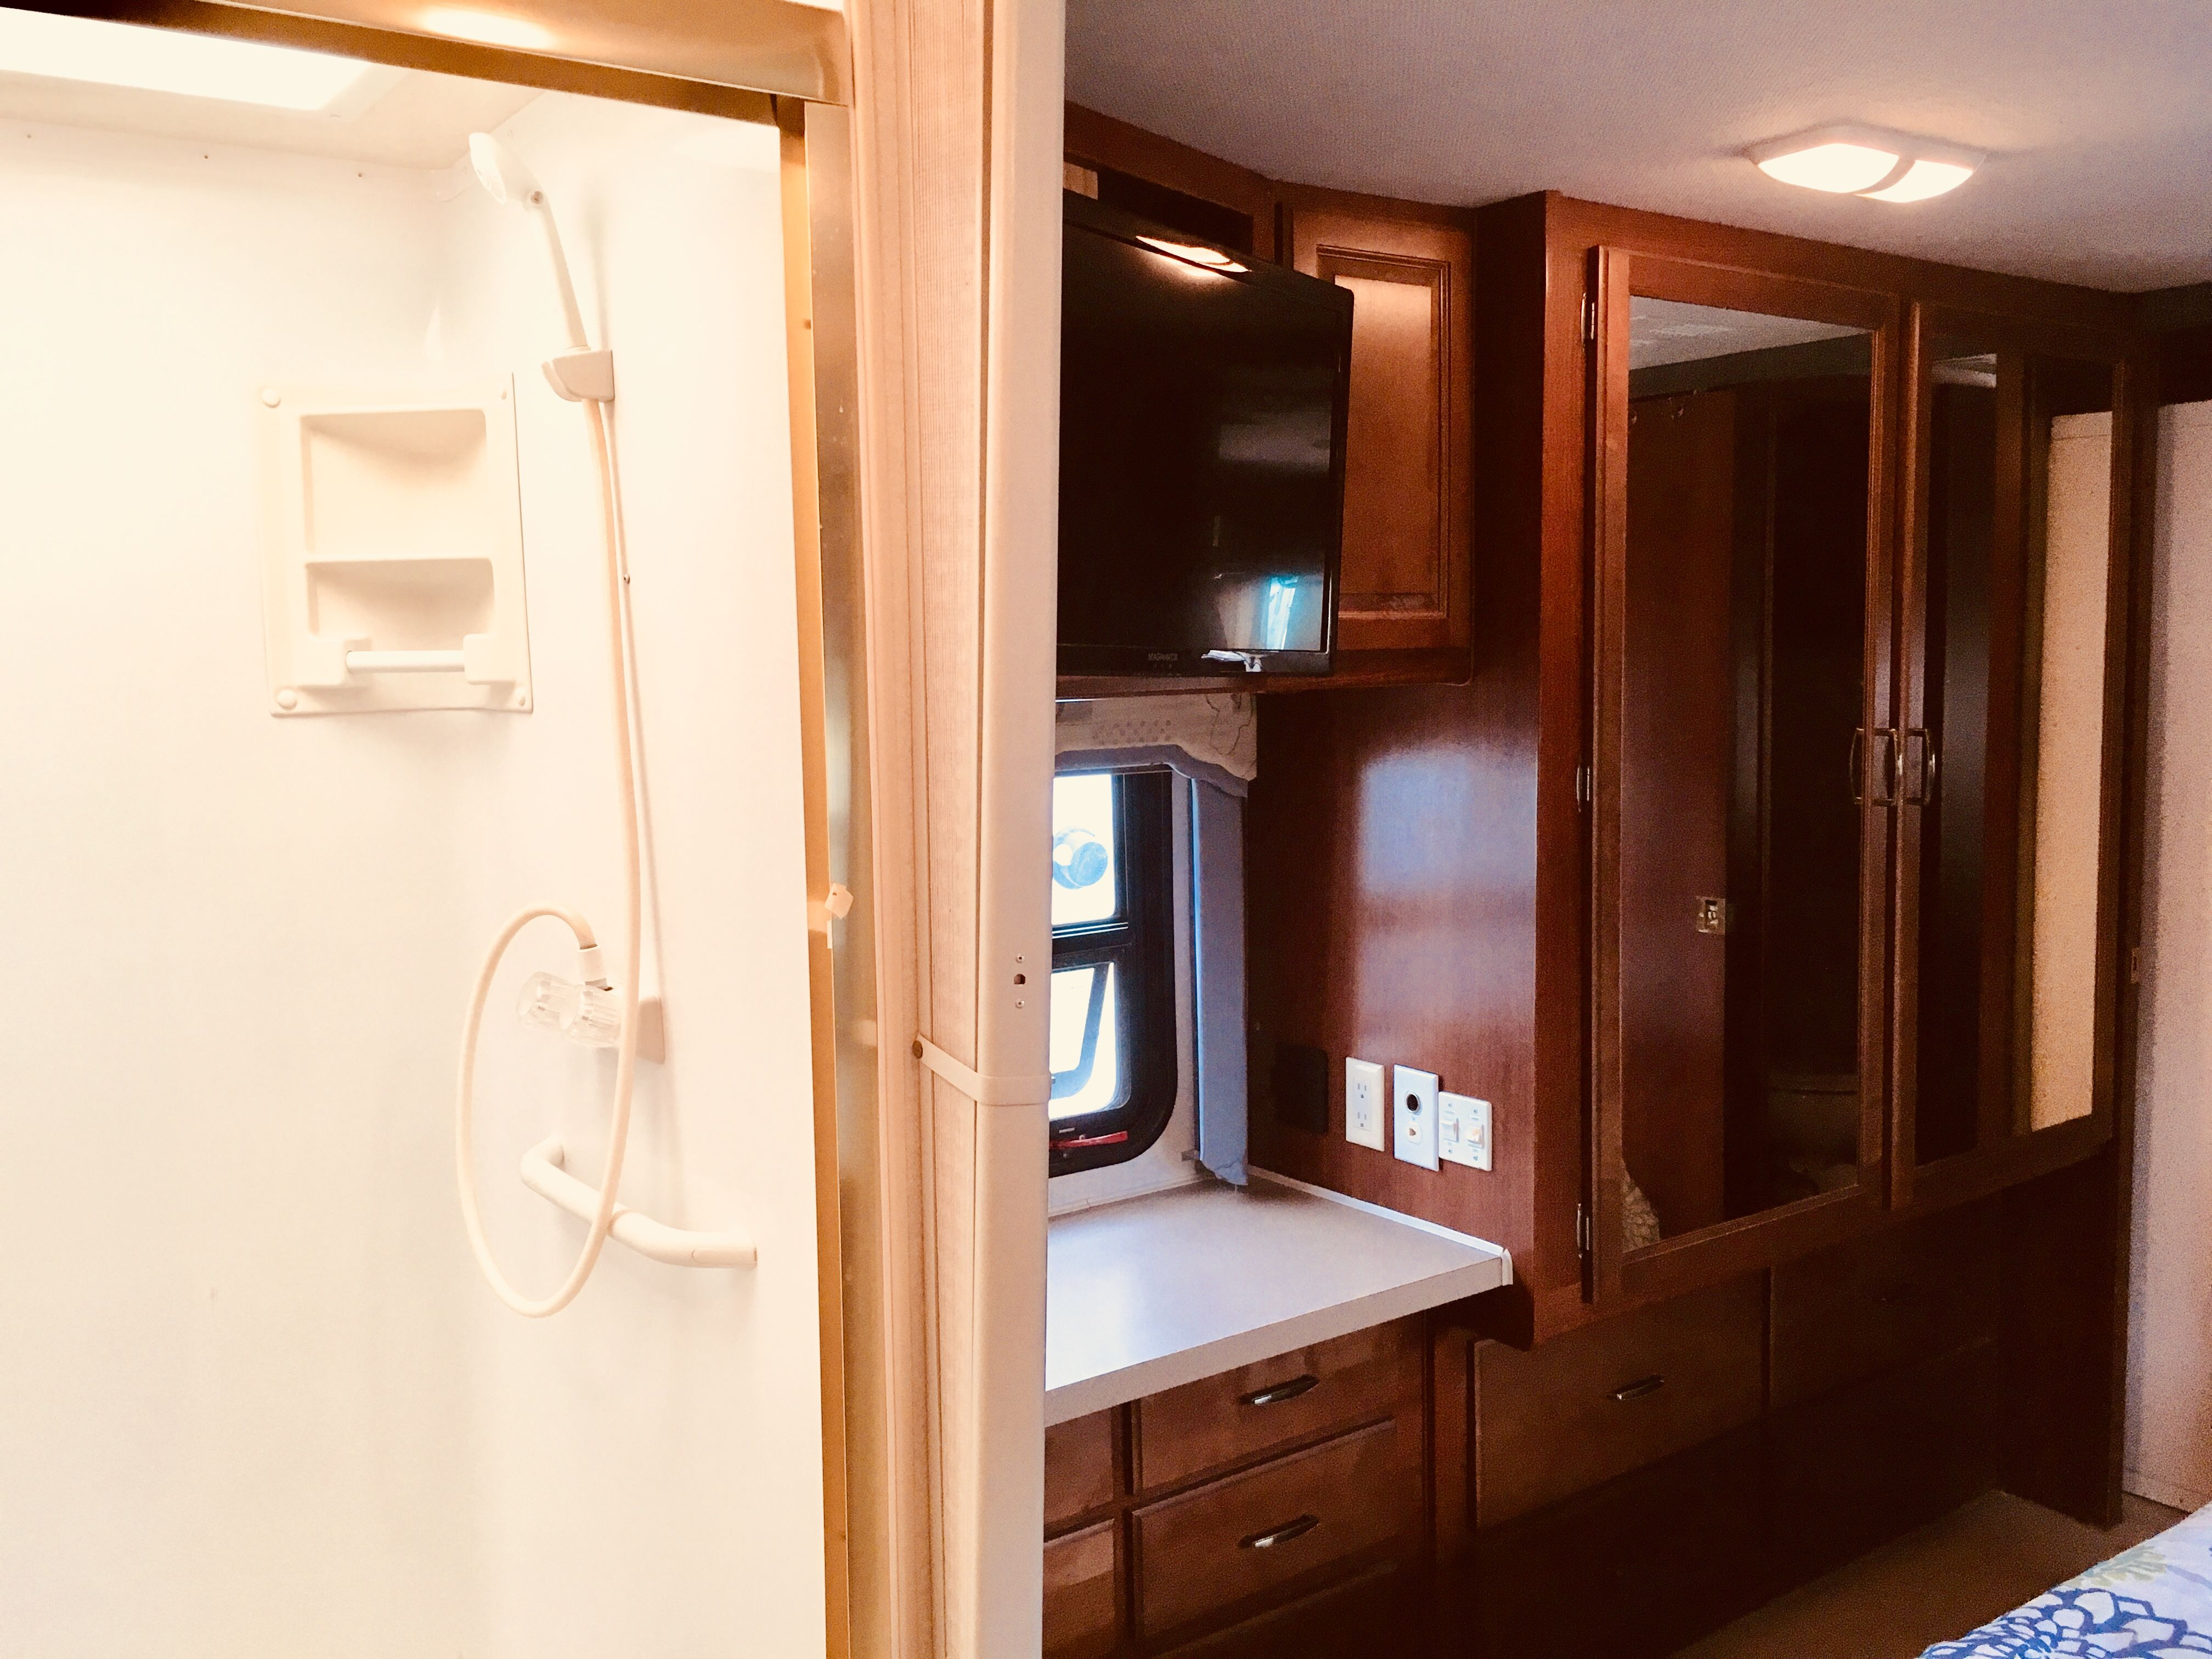 Skylight in shower and overhead vent above vanity plus two